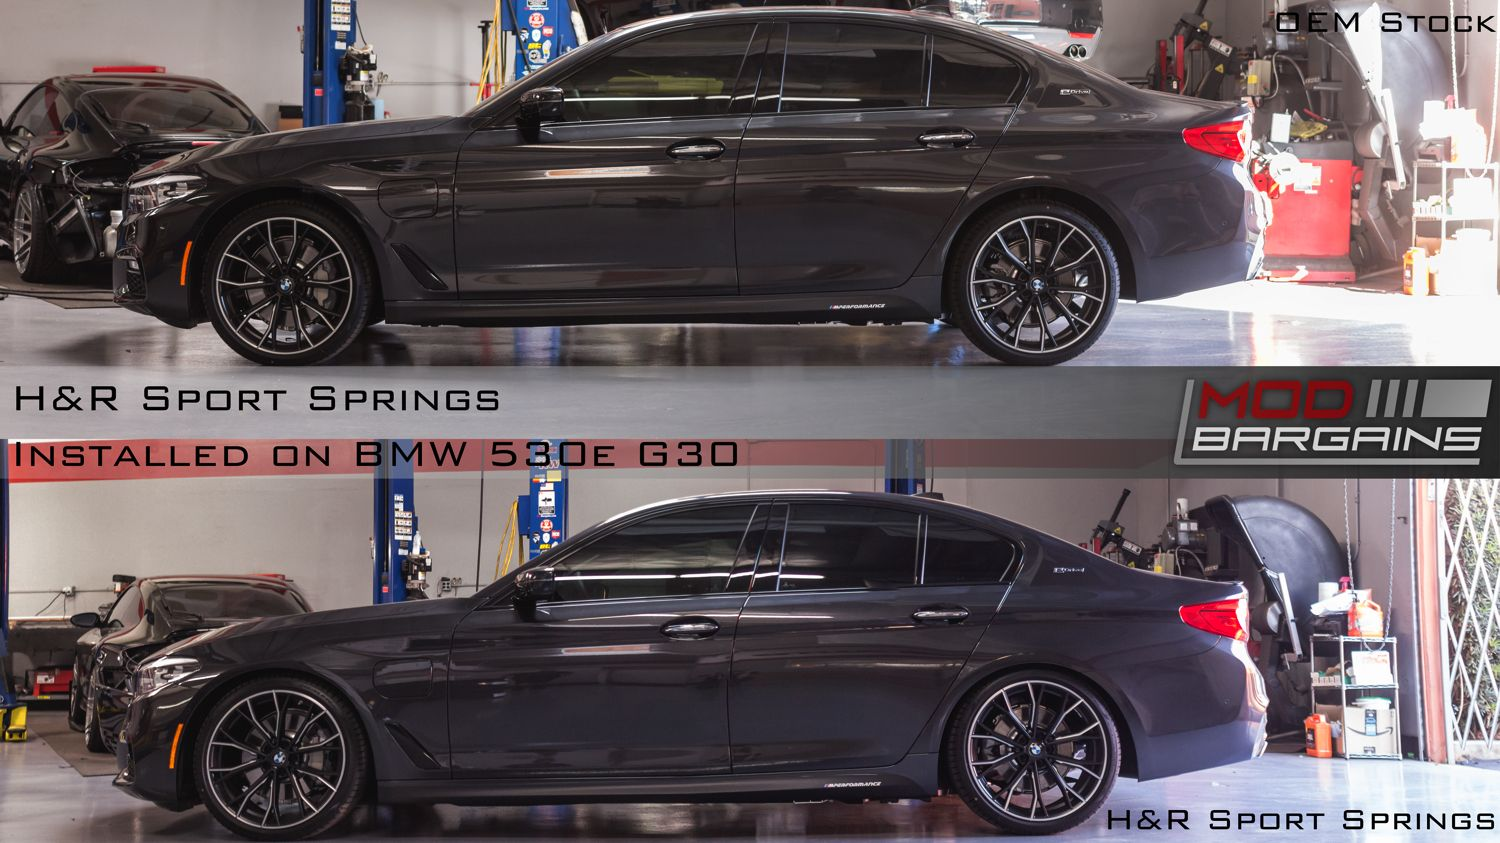 2017+ BMW 530i 540i M550i xDrive AWD H&R Sport Lowering Springs Installed